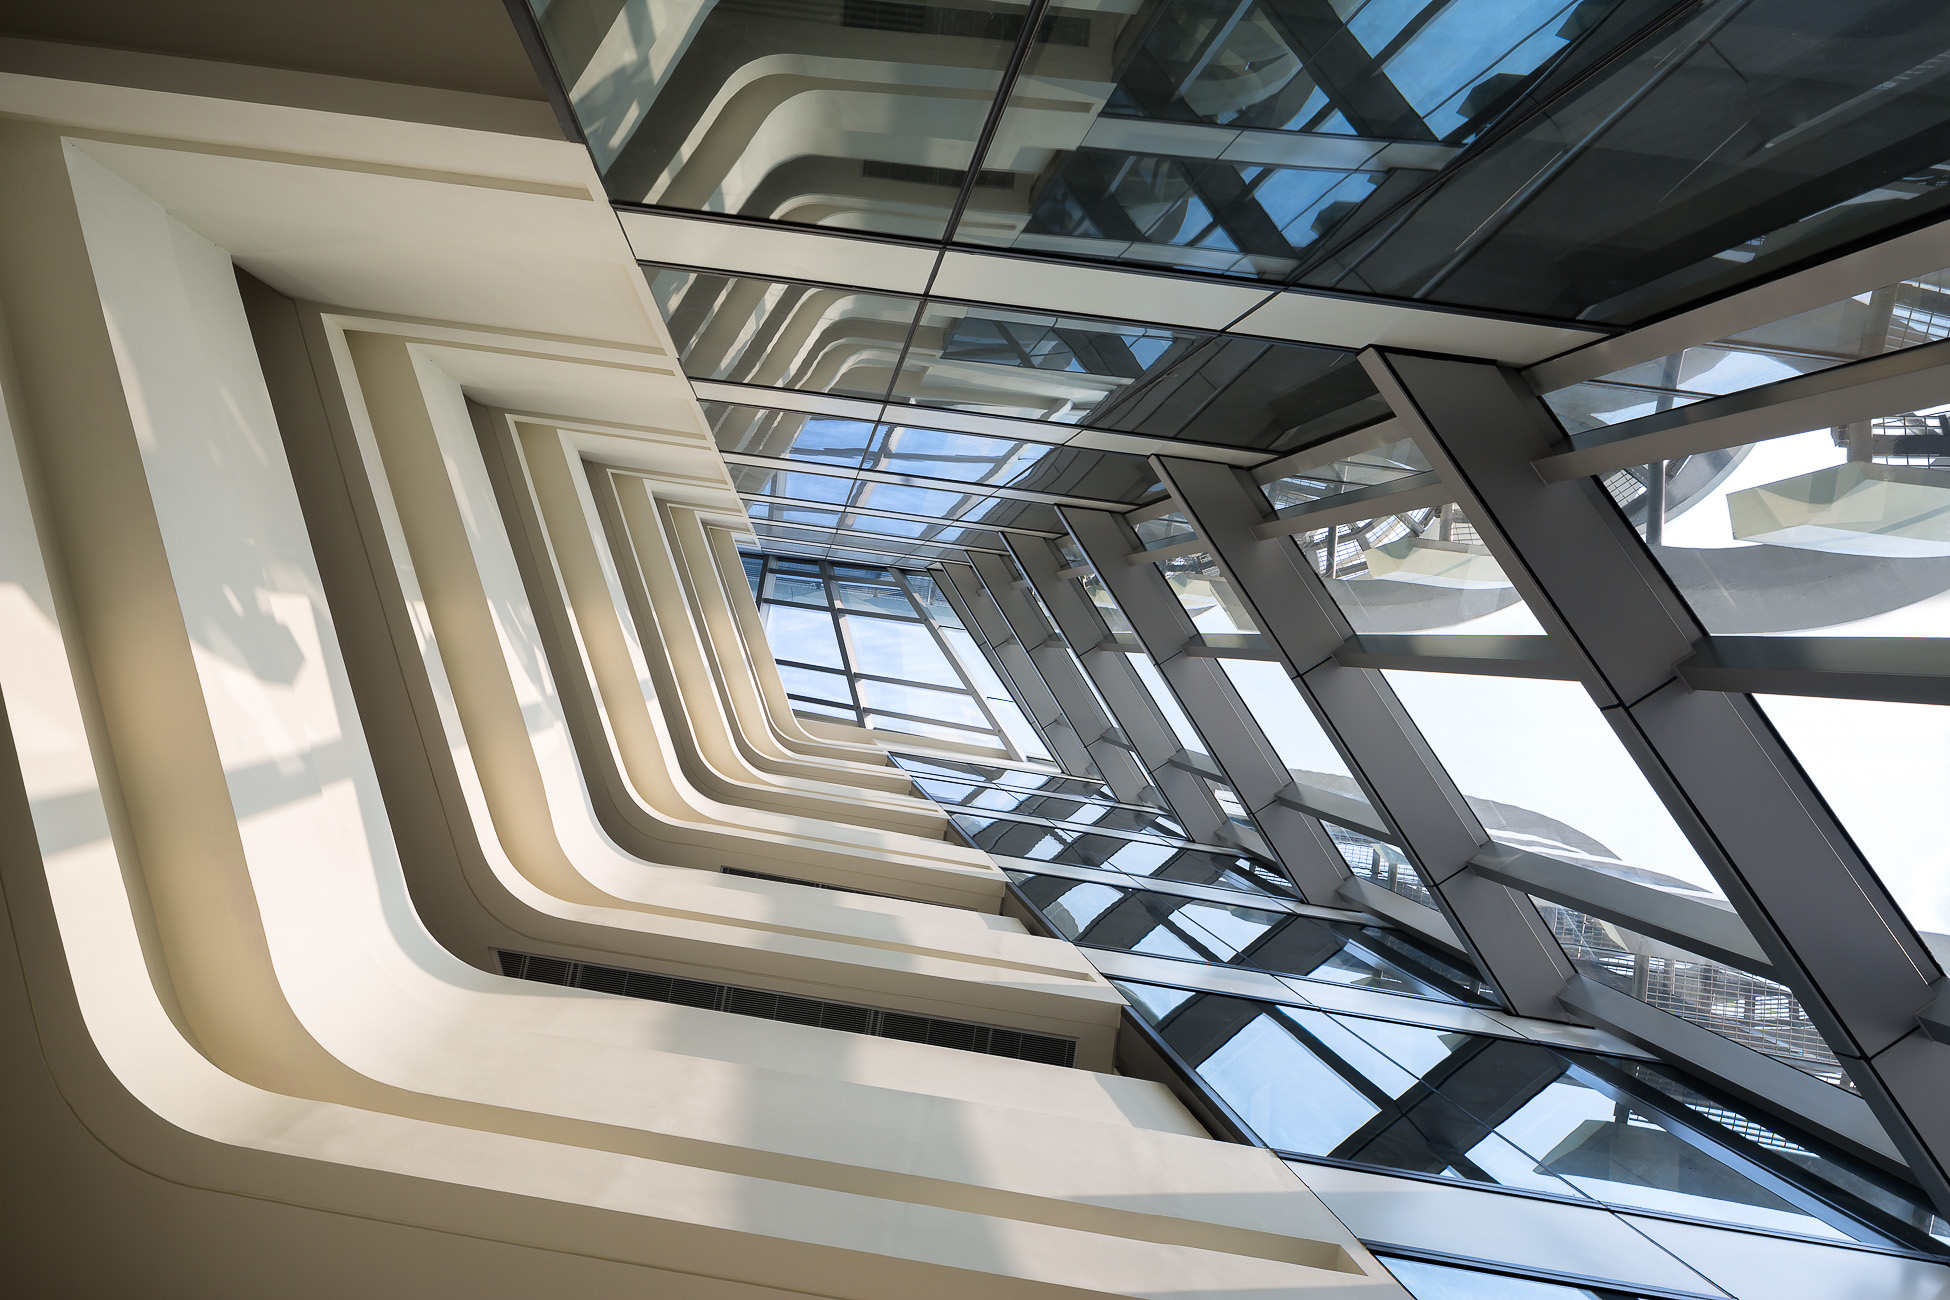 doublespace_photo_zaha_hadid_innovation_tower-26-Edit.jpg